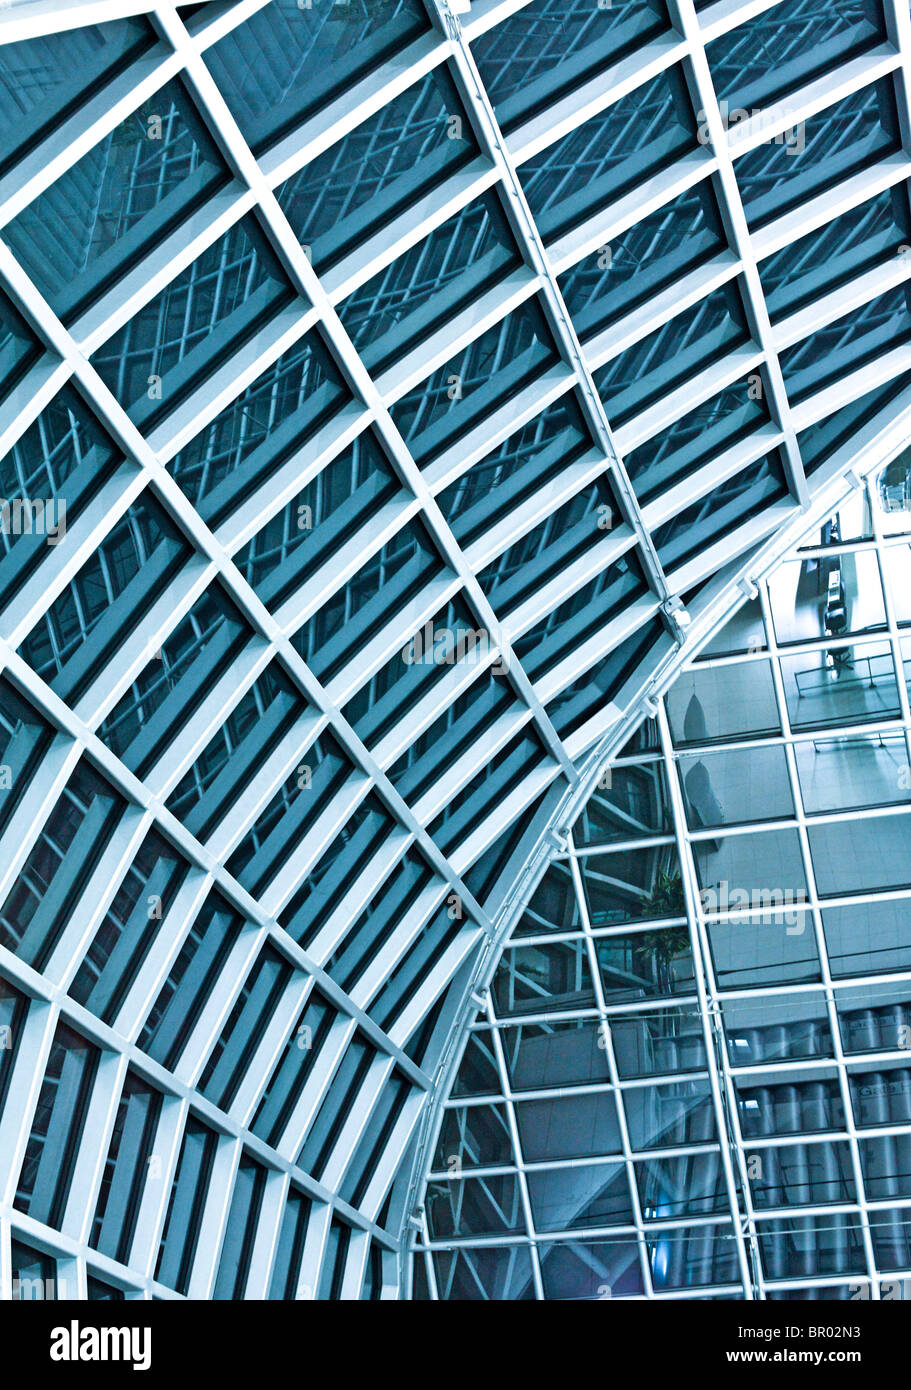 istanbul airport structure detail background - Stock Image